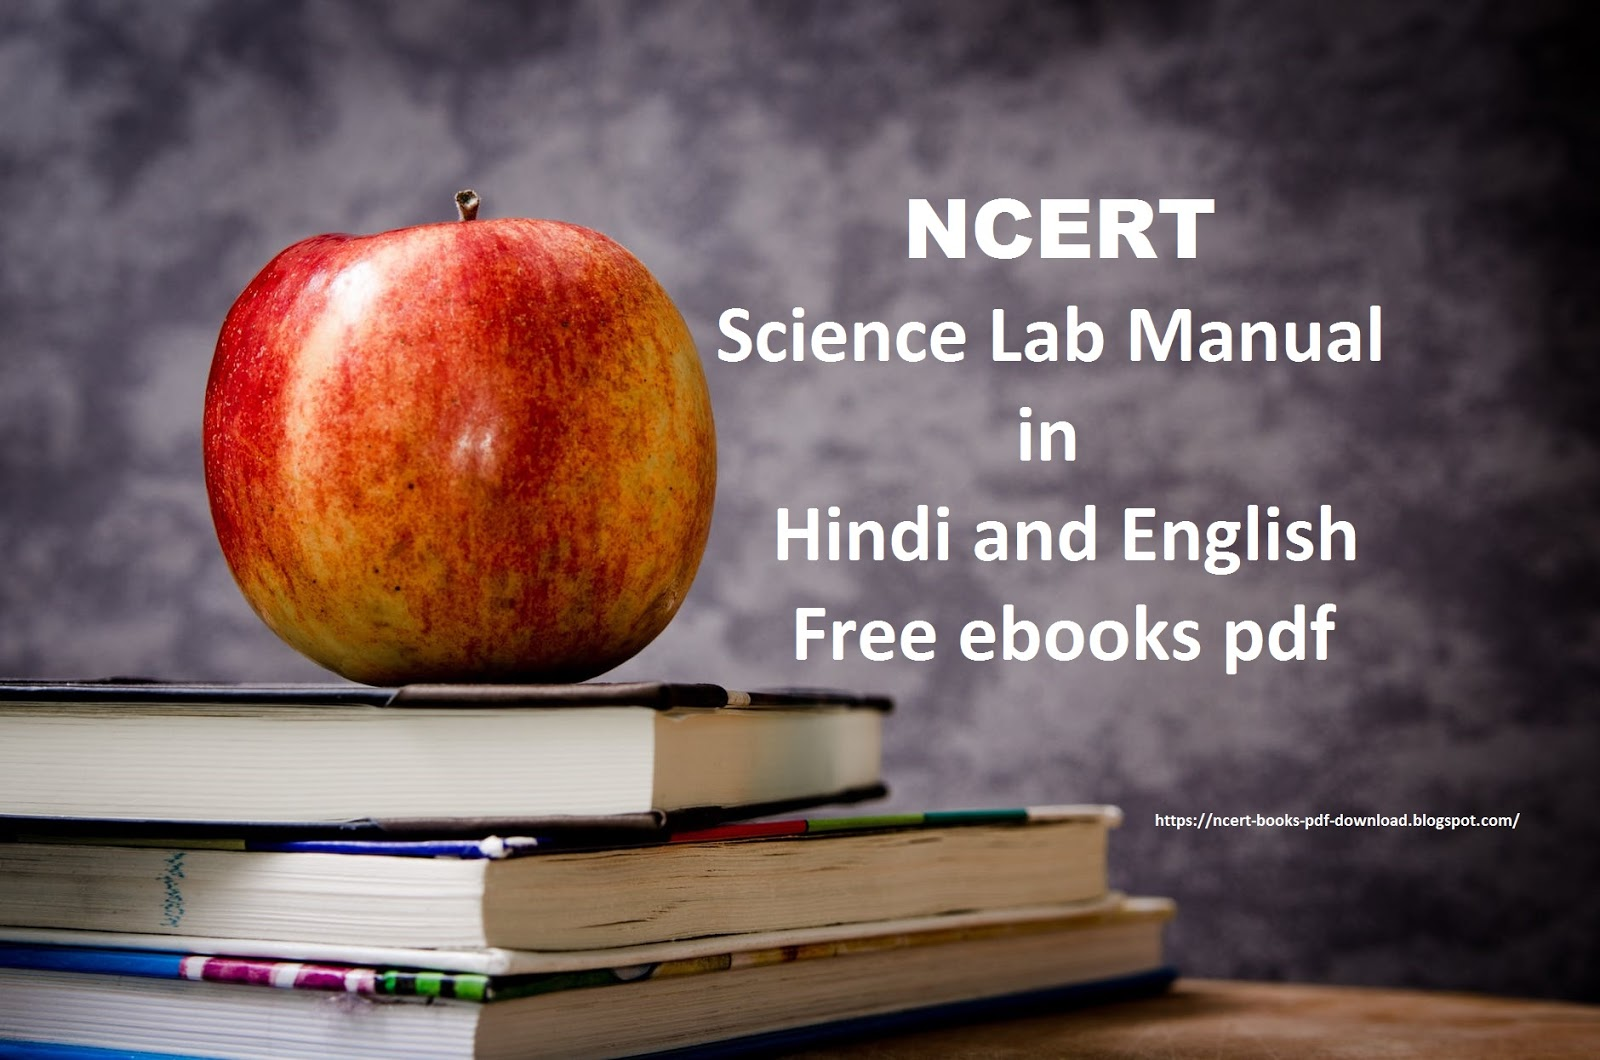 NCERT E-books Science Lab Manual free ebooks pdf in Hindi and